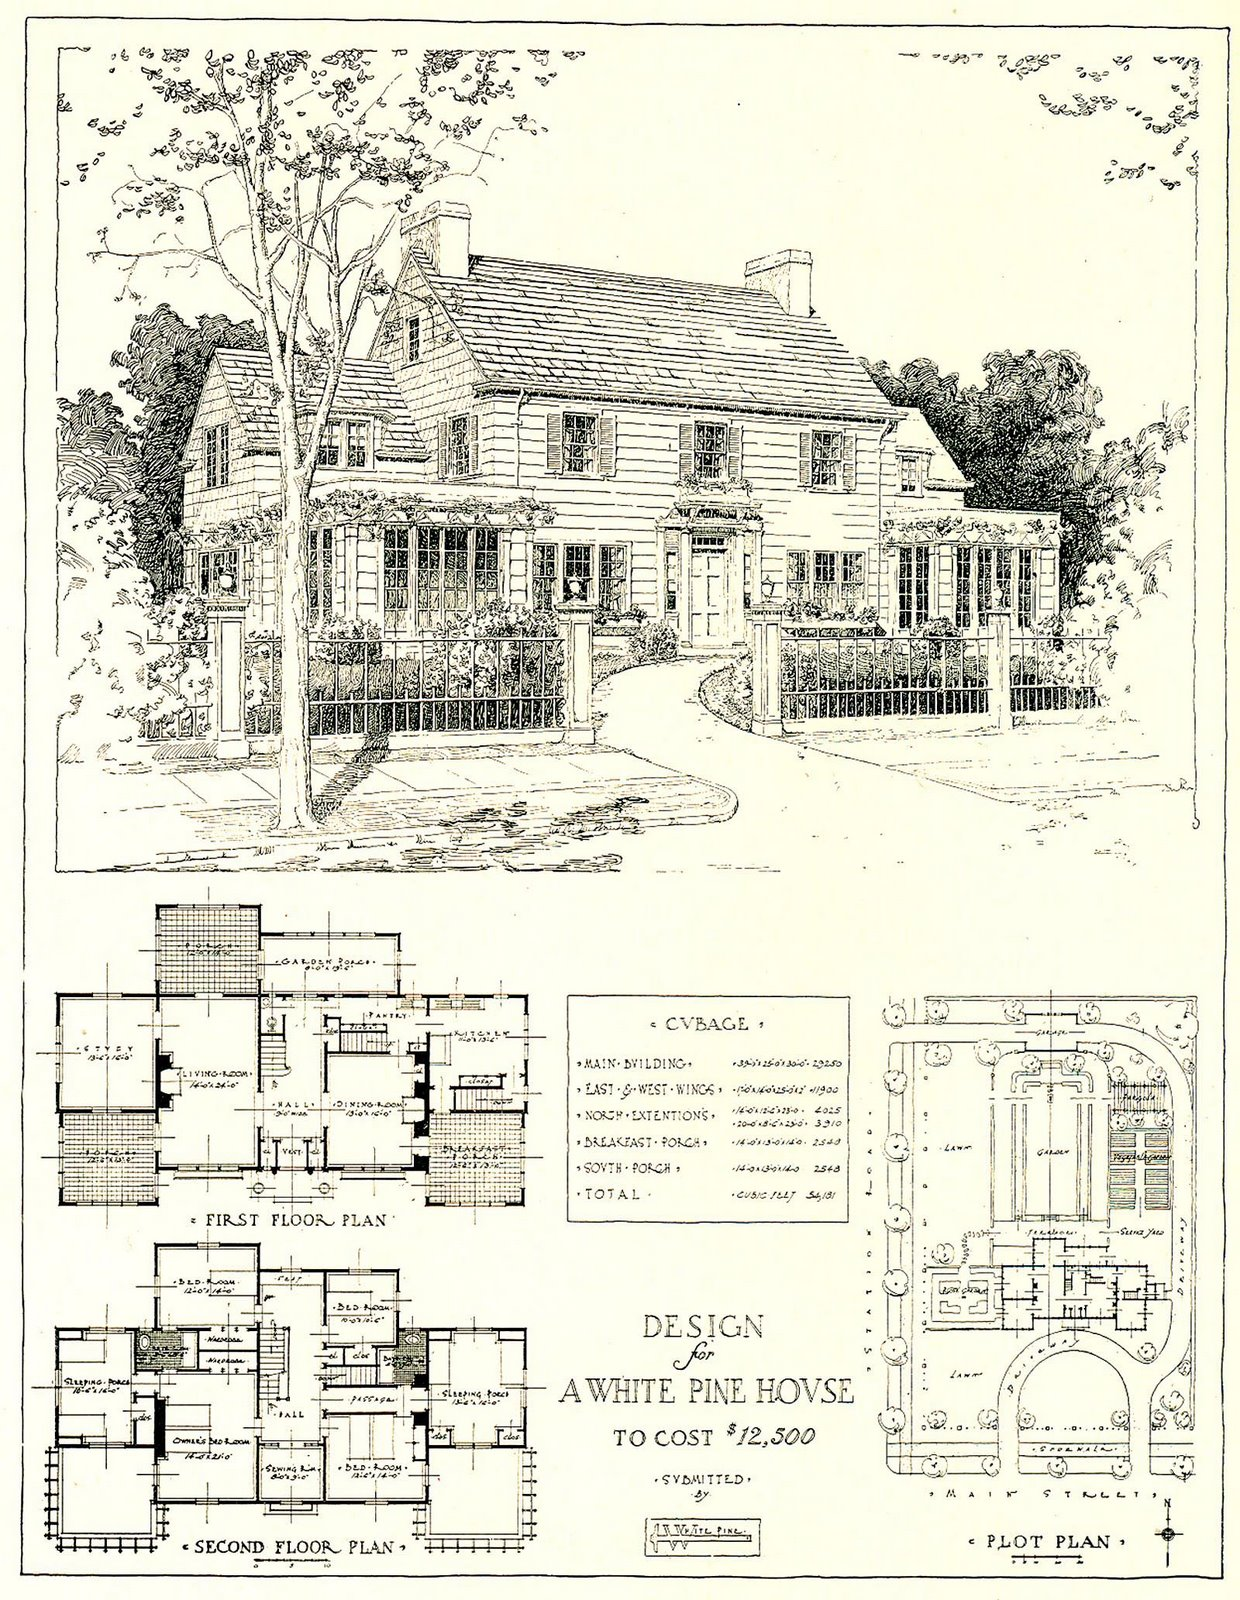 1917 Architectural Design For A 12 500 House Content In